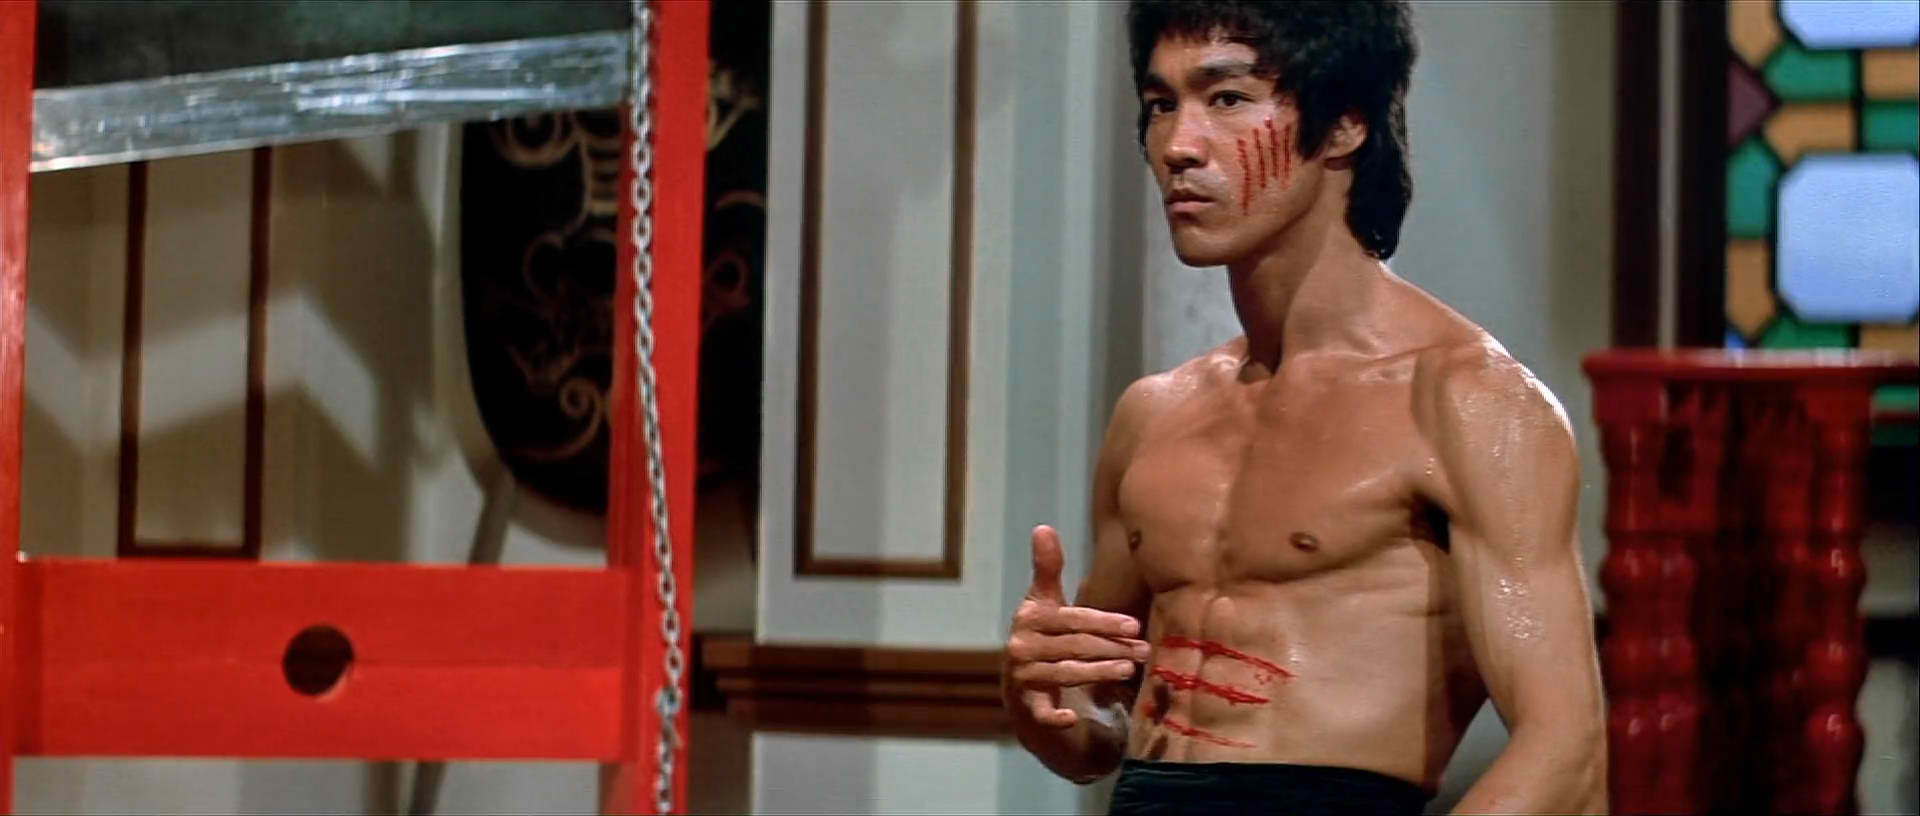 Enter-the-Dragon-Bruce-Lee-Enter-the-Dragon-wallpaper-wp421056-1